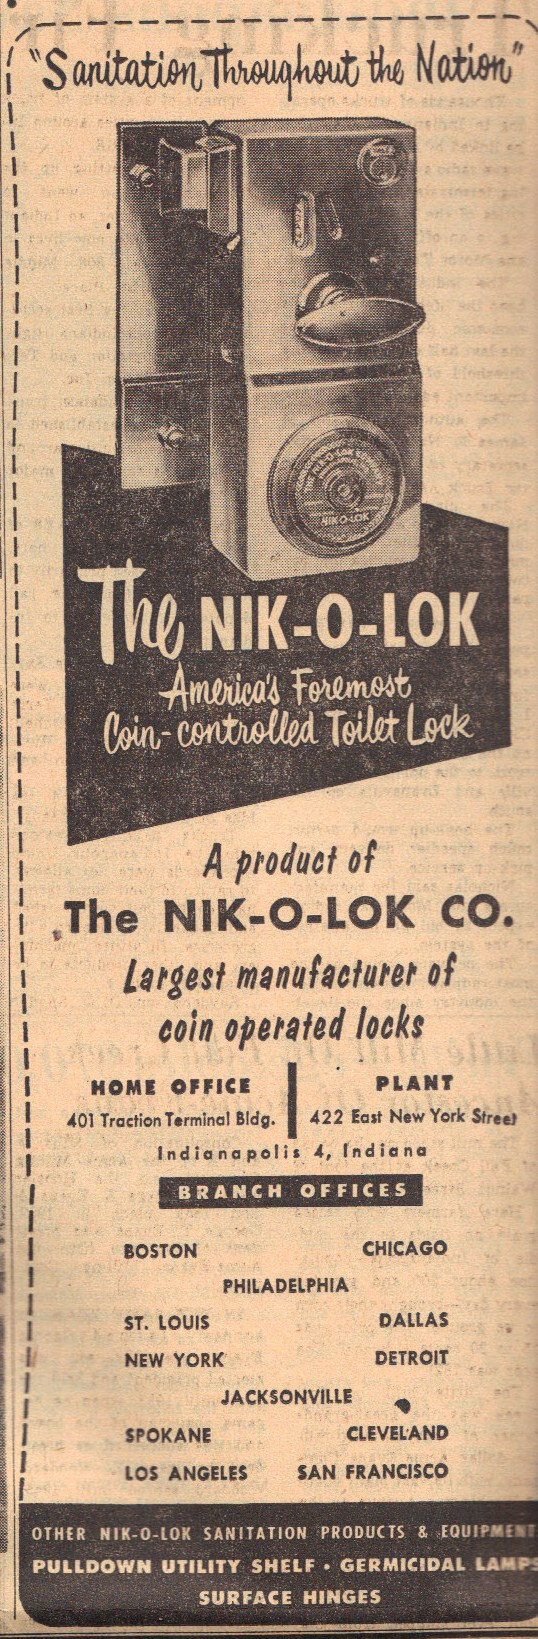 Sunday Adverts: Nik-O-Lok Toilet Lock Company